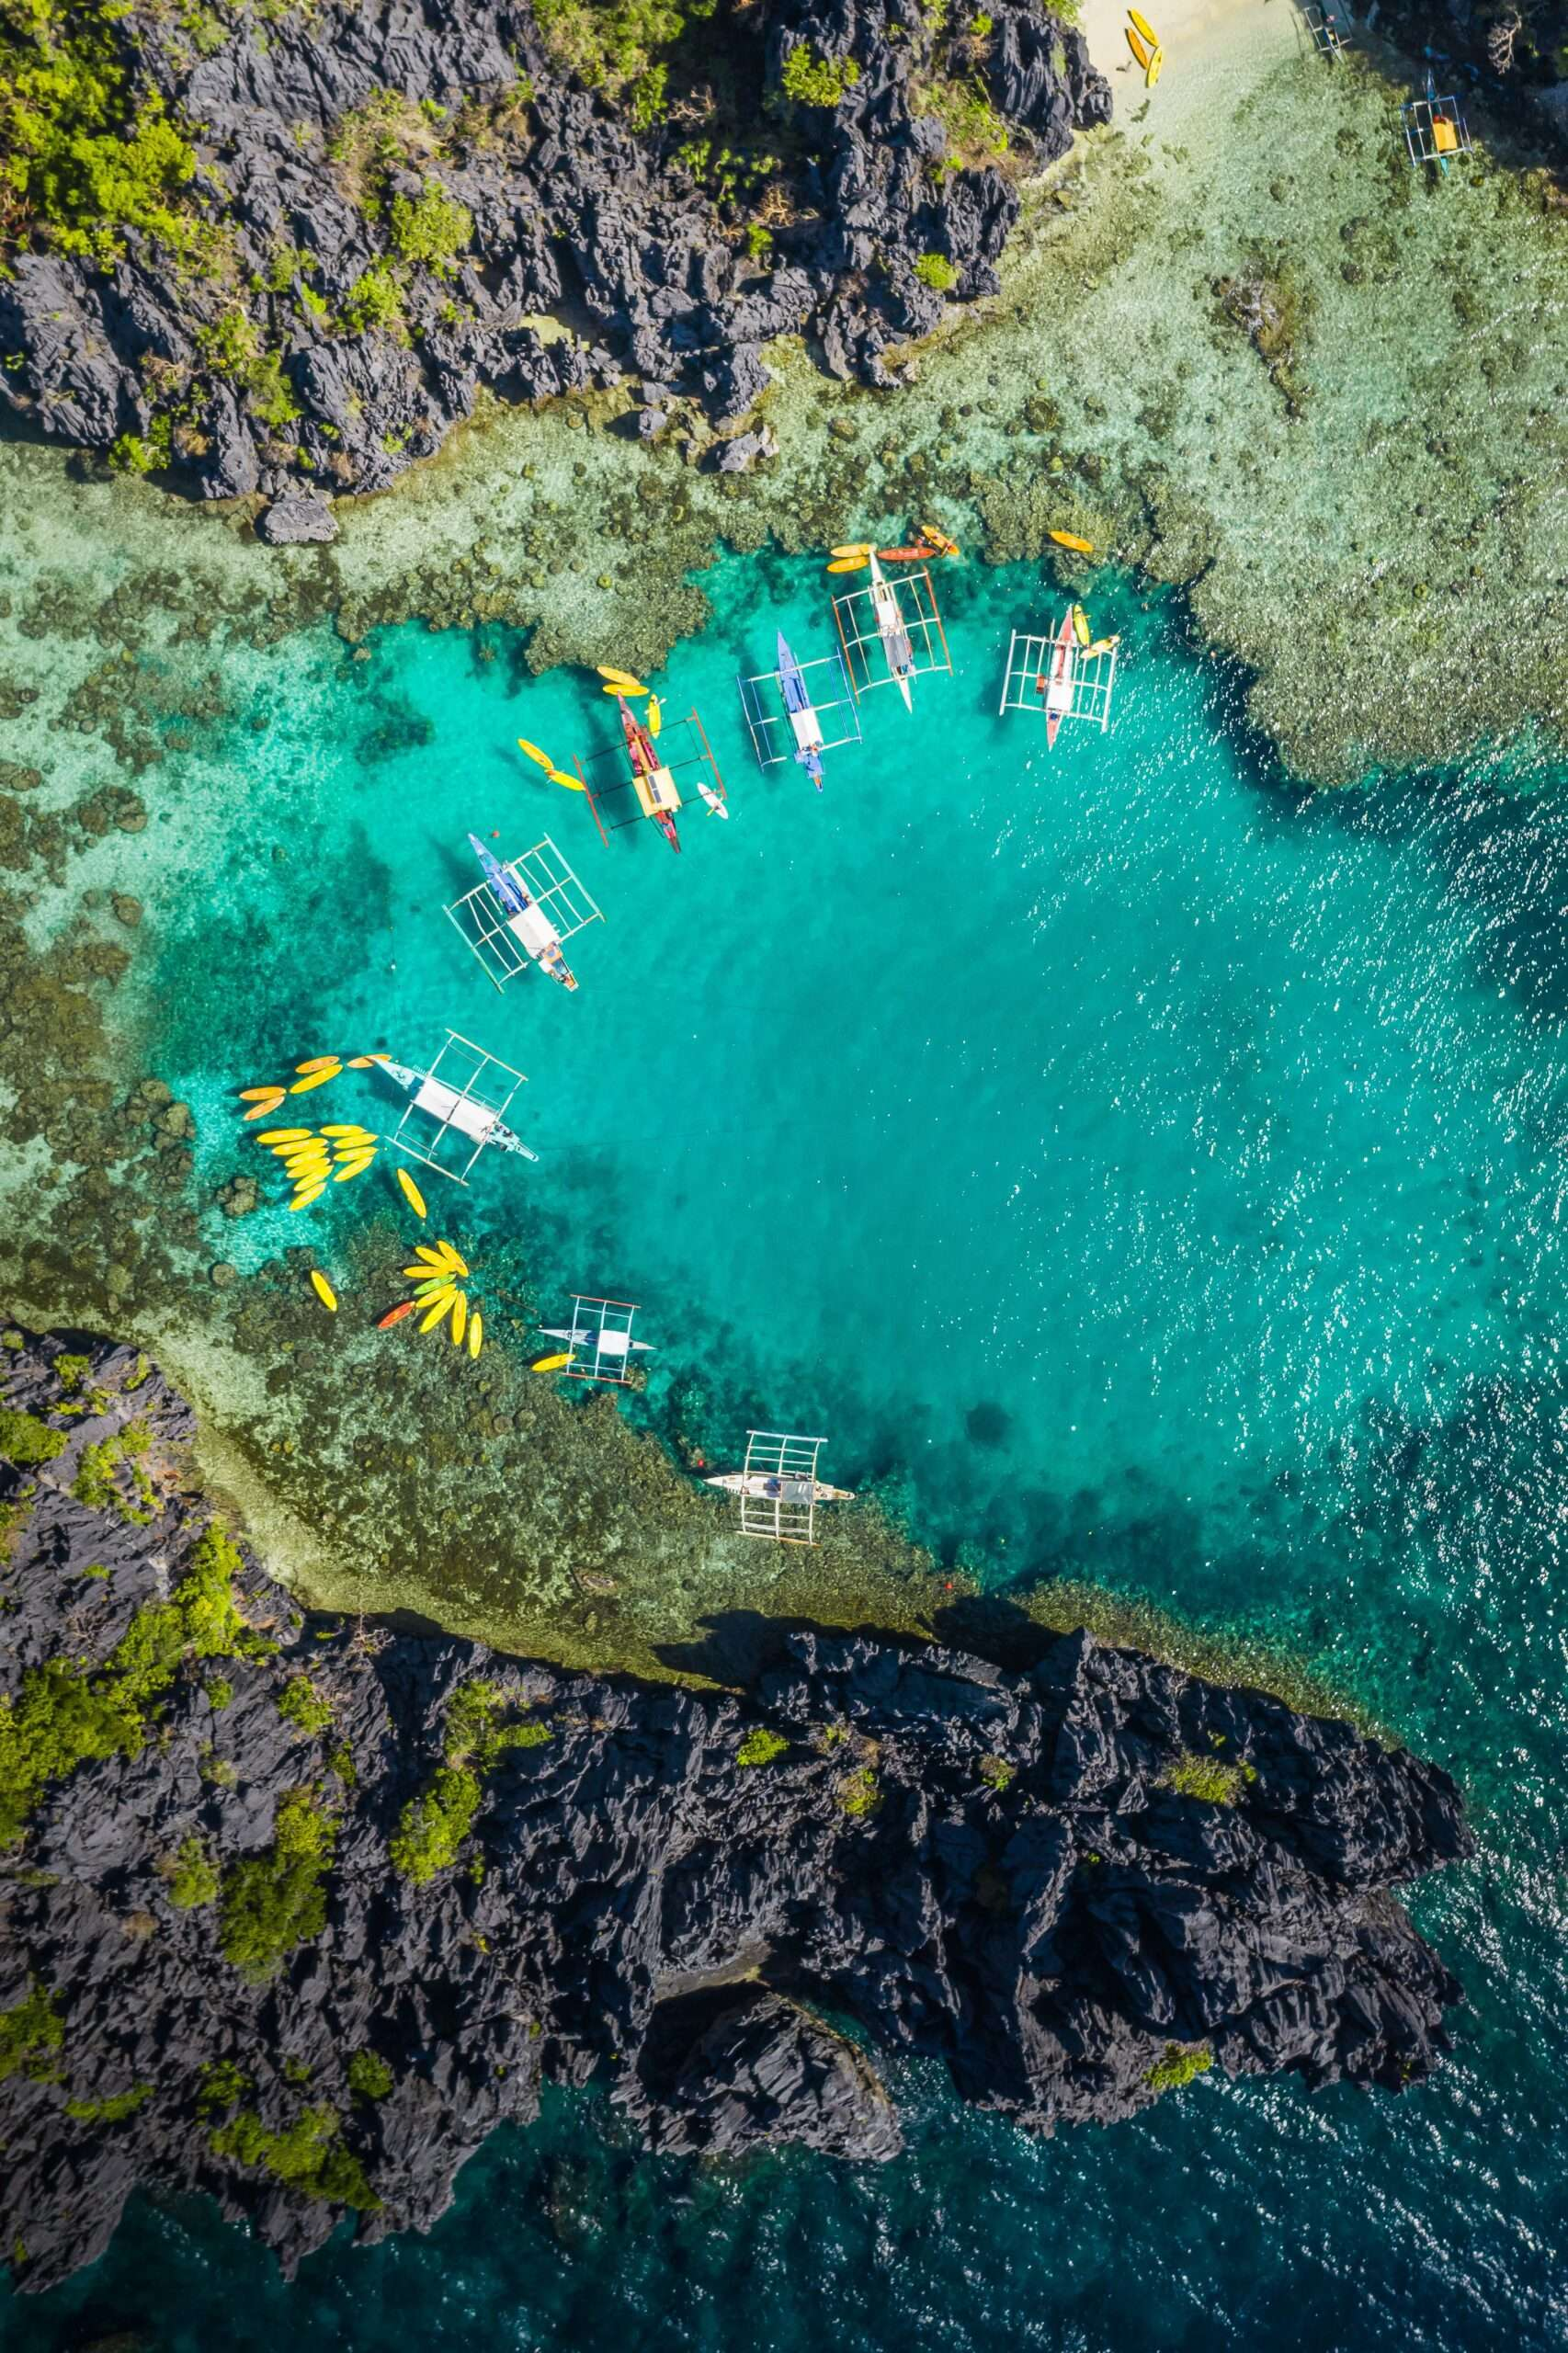 drone shot of a turquoise lagoon in Coron, with wooden boats and coral reefs